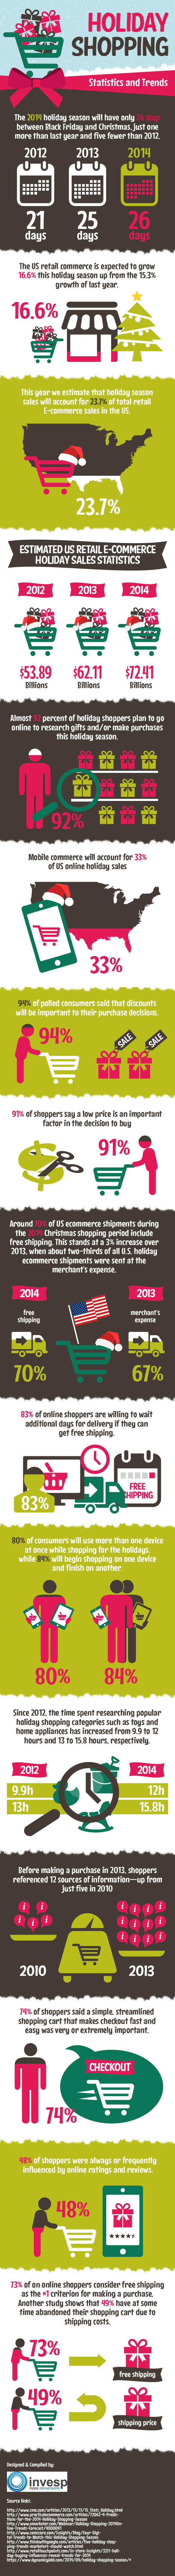 Holiday Shopping Statistics and Trends